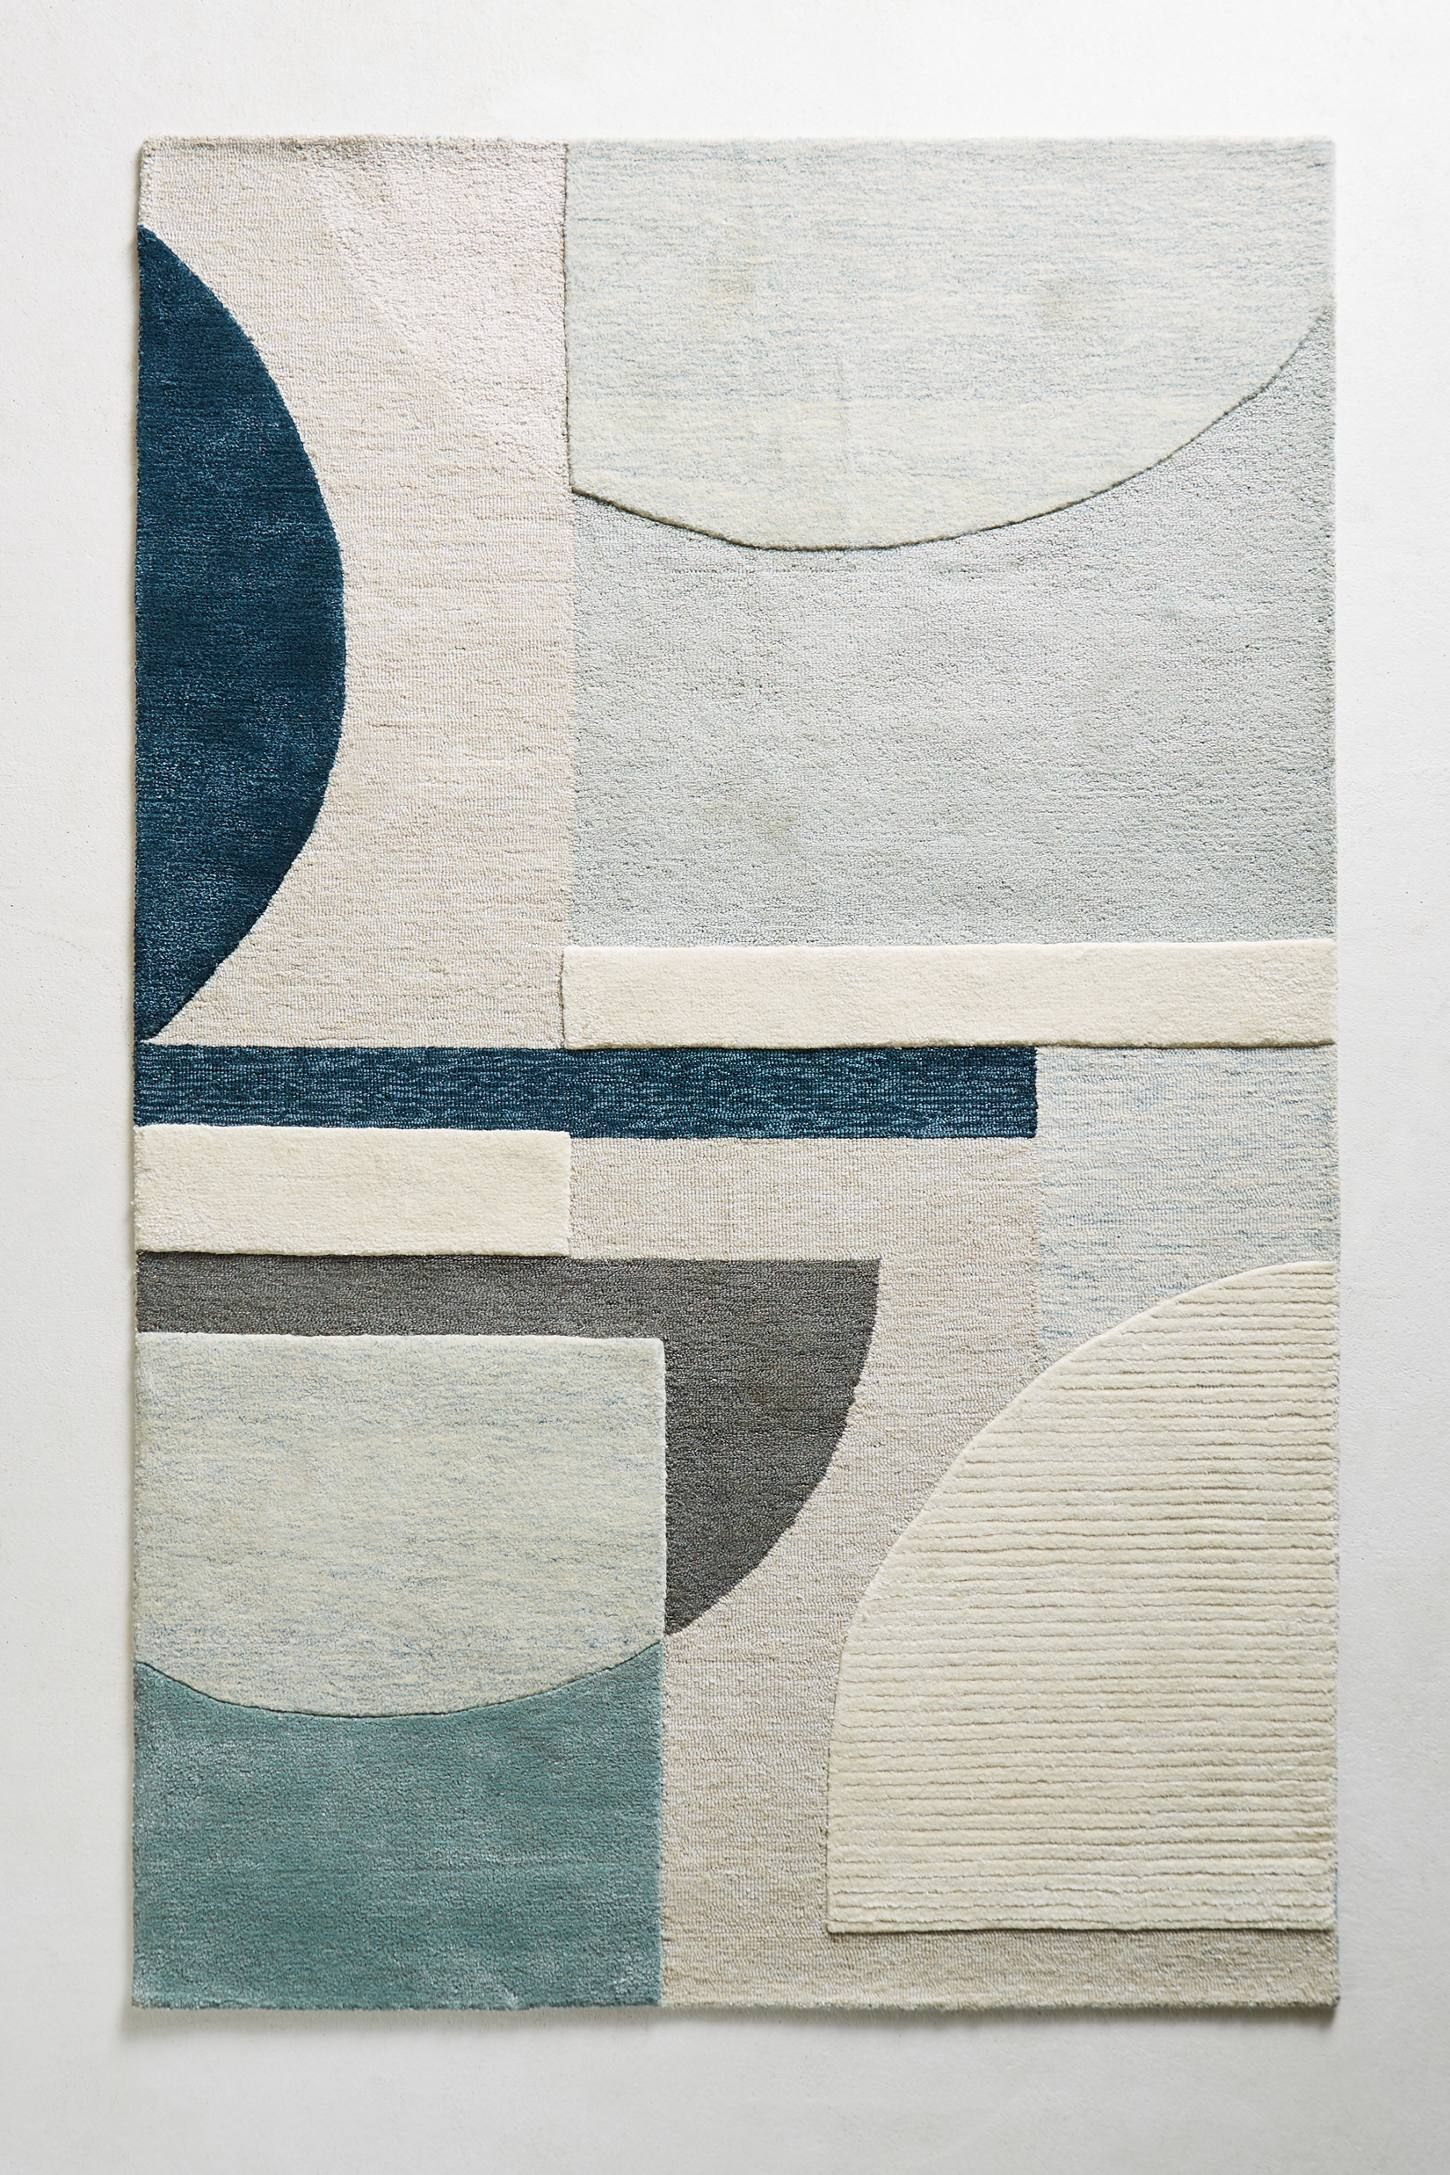 A Tappeto Translate Abstract Geometry Rug 地毯 Tappetitappeti Salotto 和 Tappeti